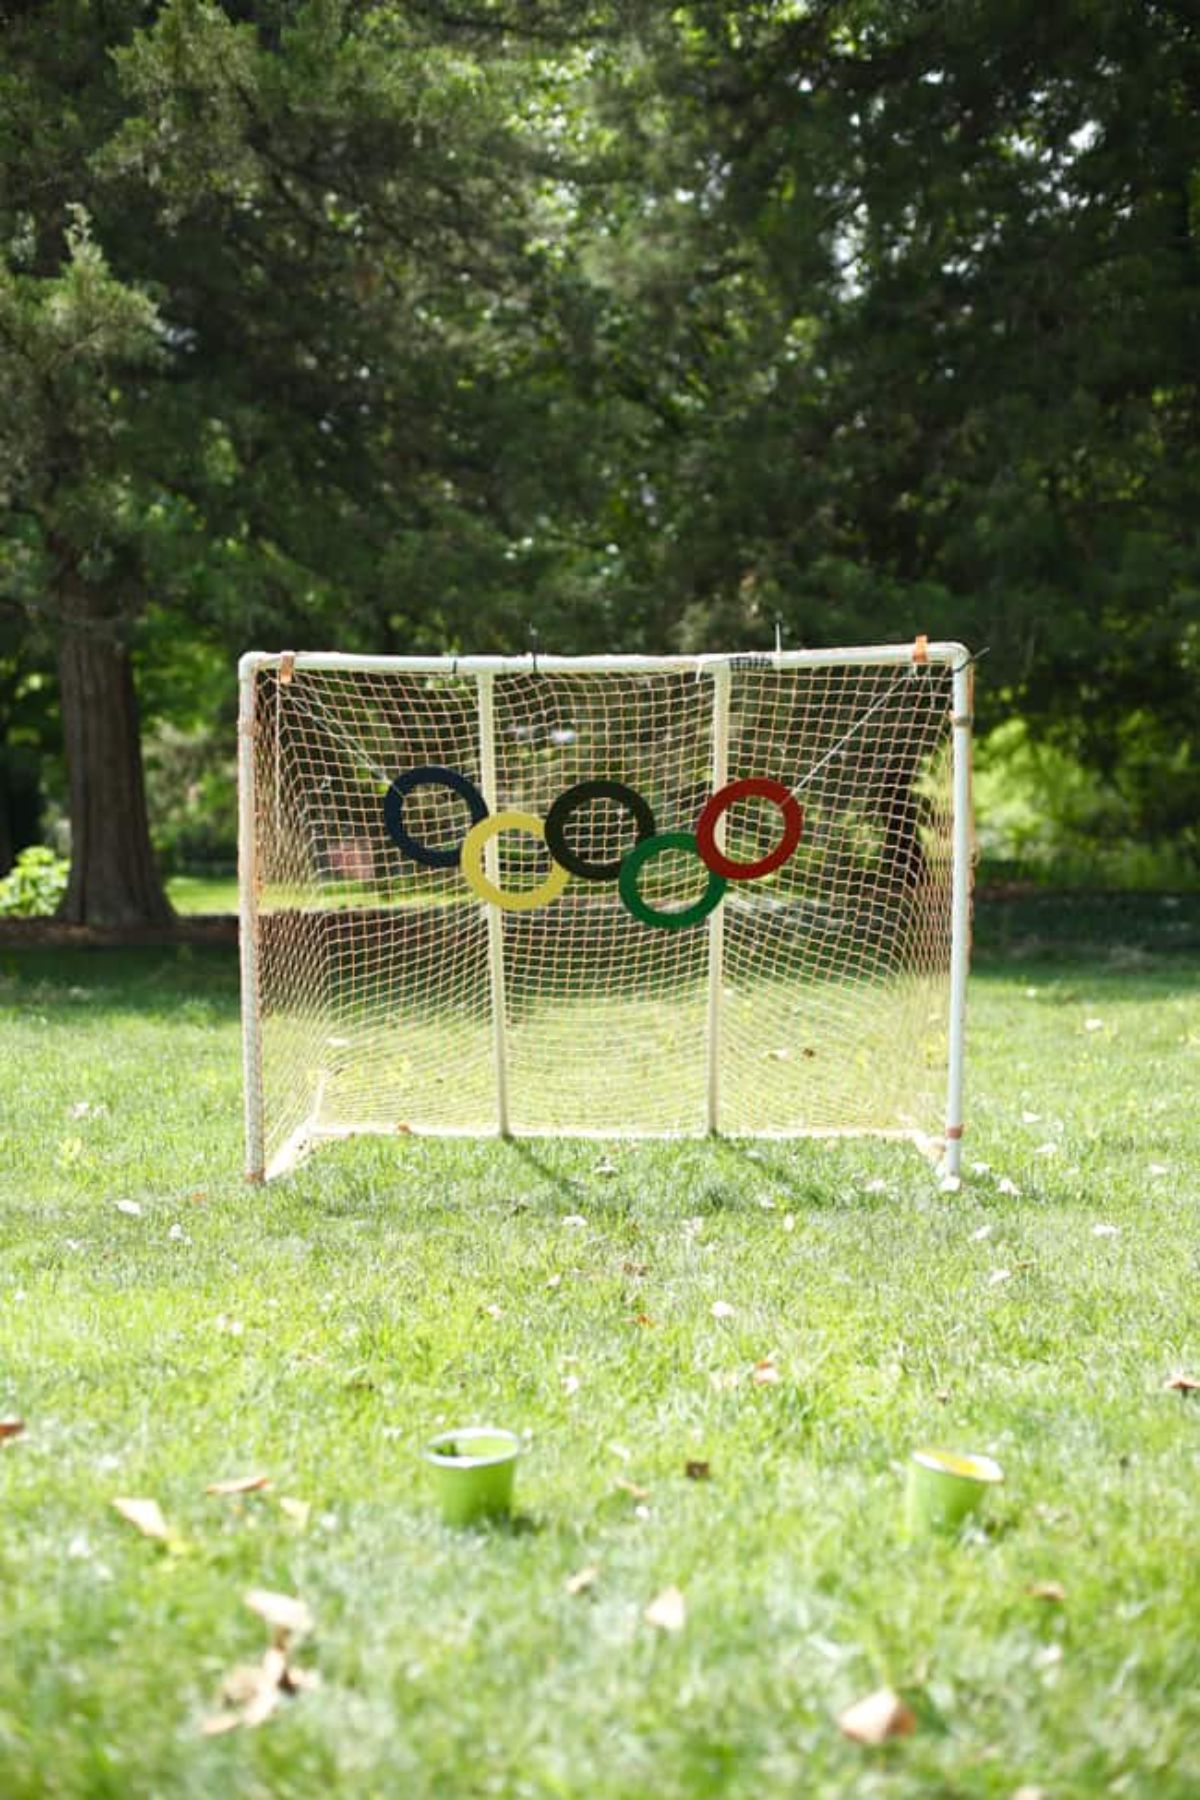 a football goal is in front of some trees. Olympic rings are hanging from it